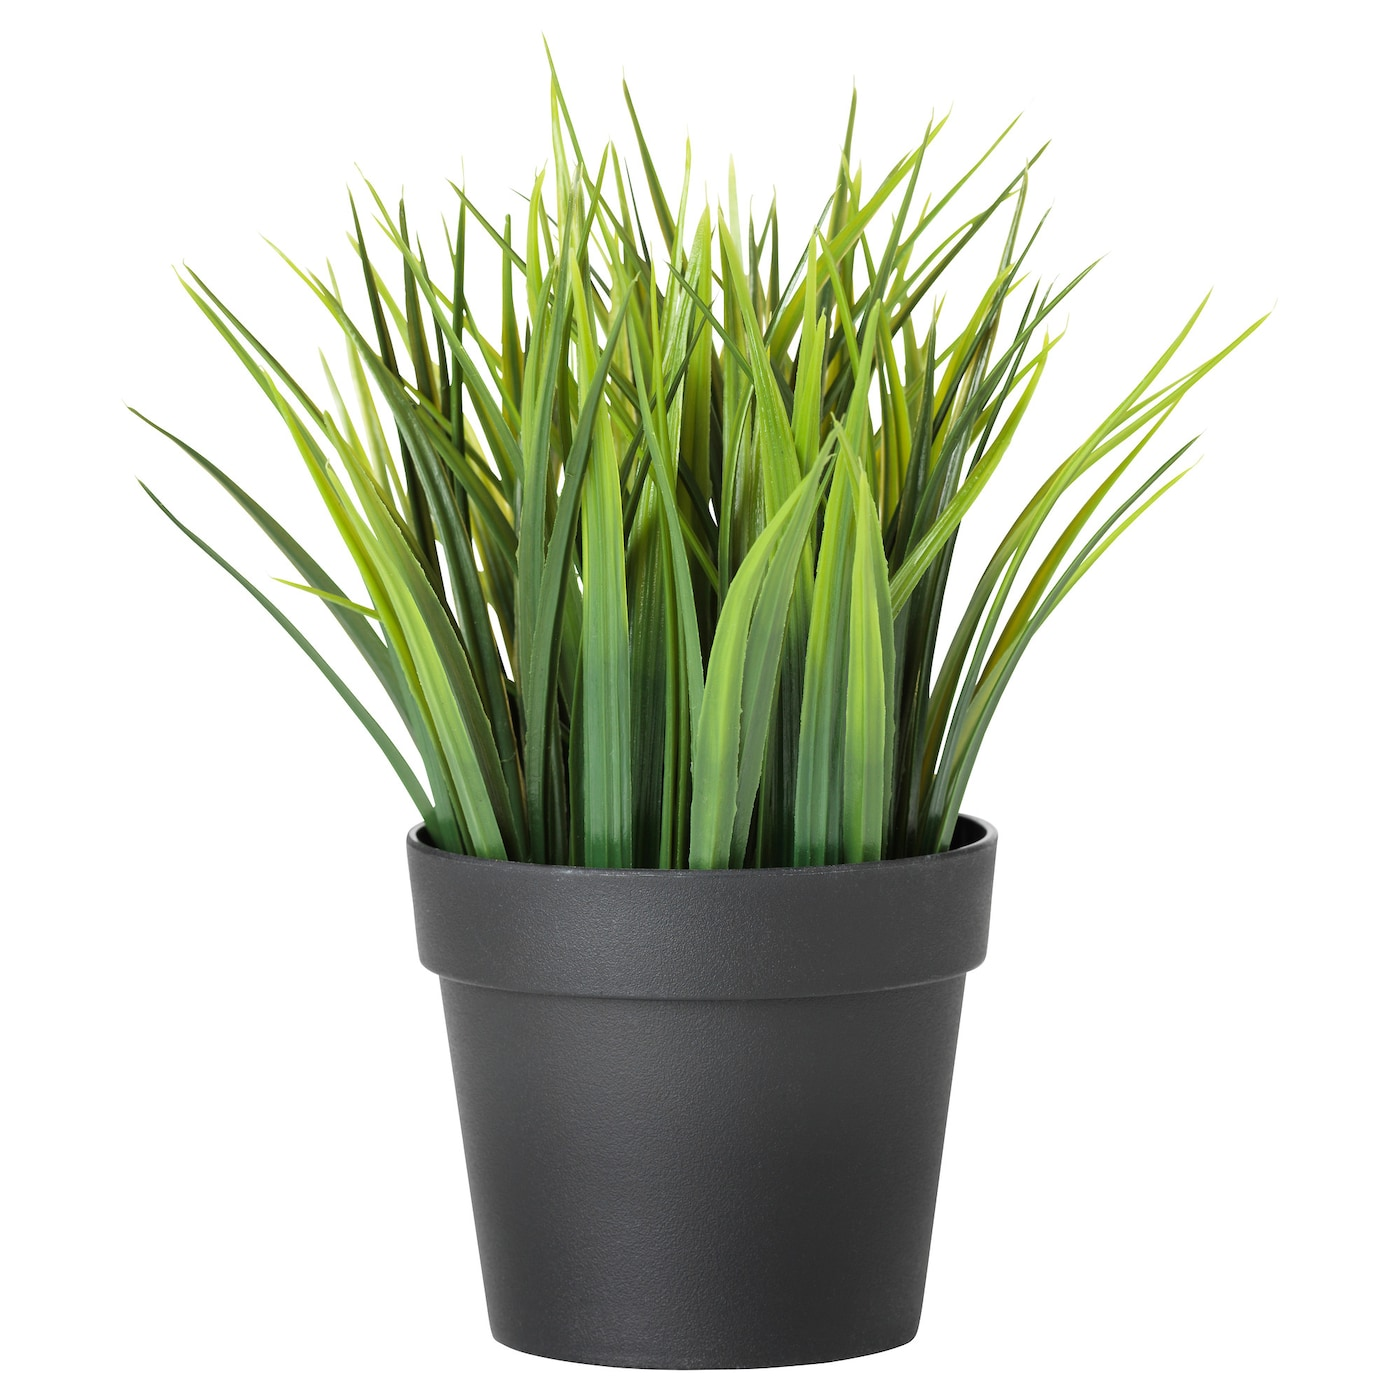 FEJKA Artificial potted plant - in/outdoor grass 10 cm